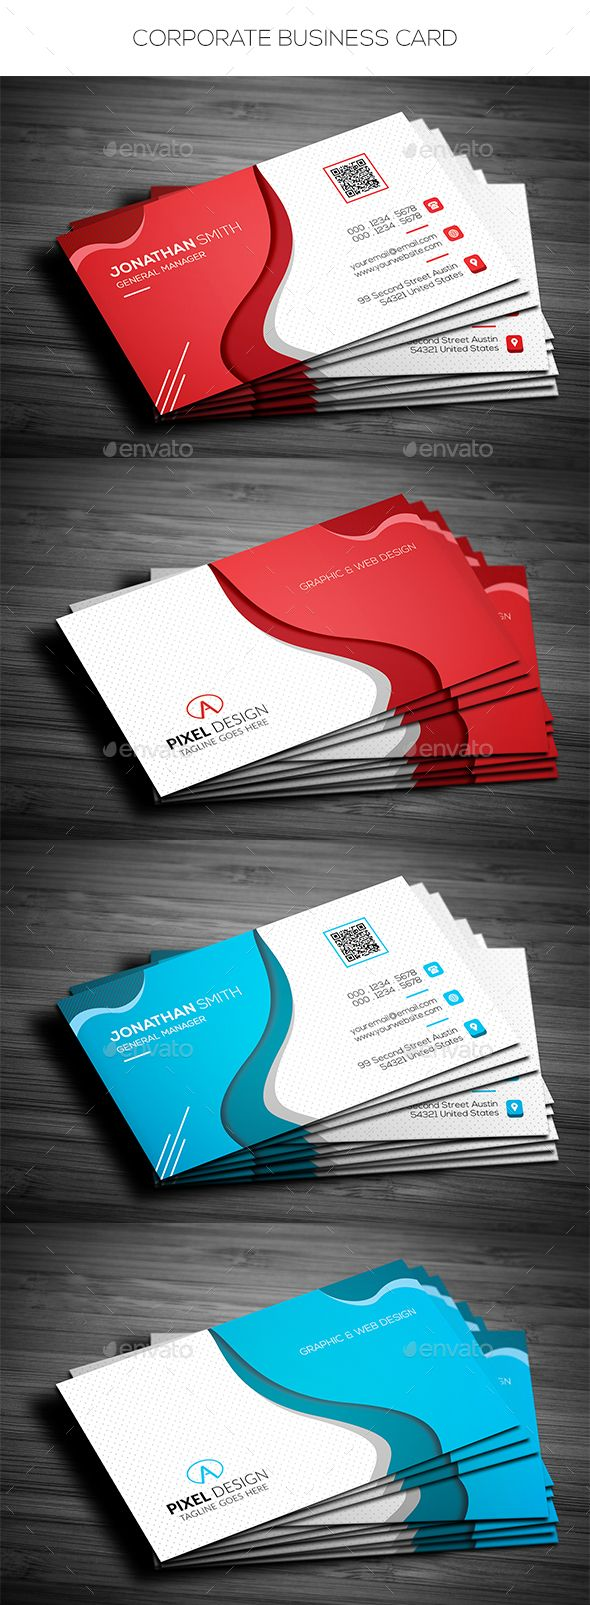 825 best Business Cards images on Pinterest | Business card design ...